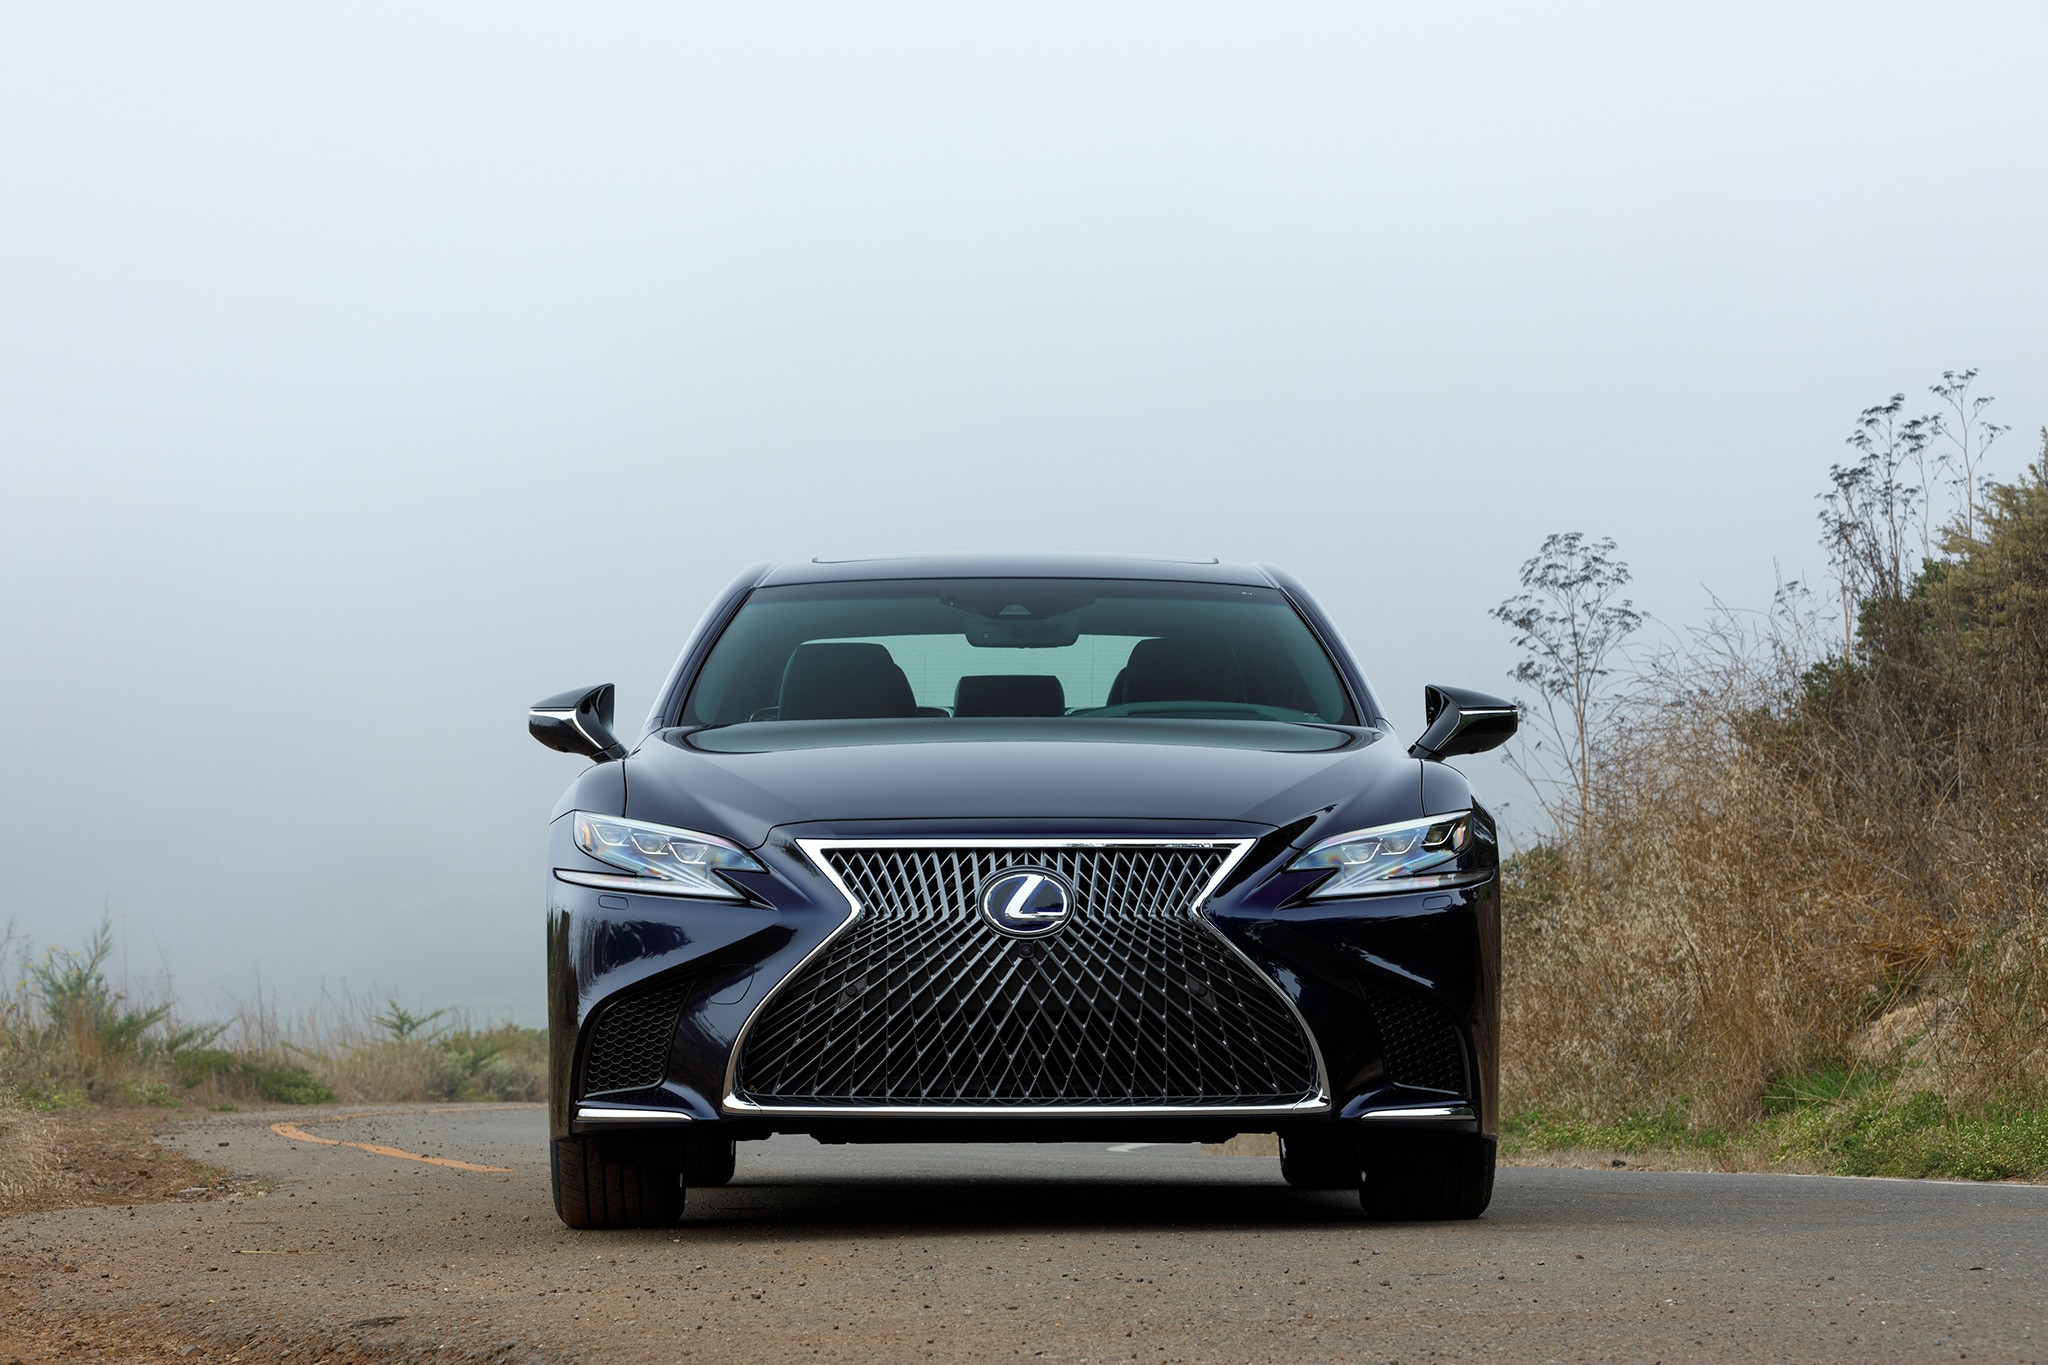 https://st.automobilemag.com/uploads/sites/11/2017/09/2018-Lexus-LS-500h-front-view-06.jpg